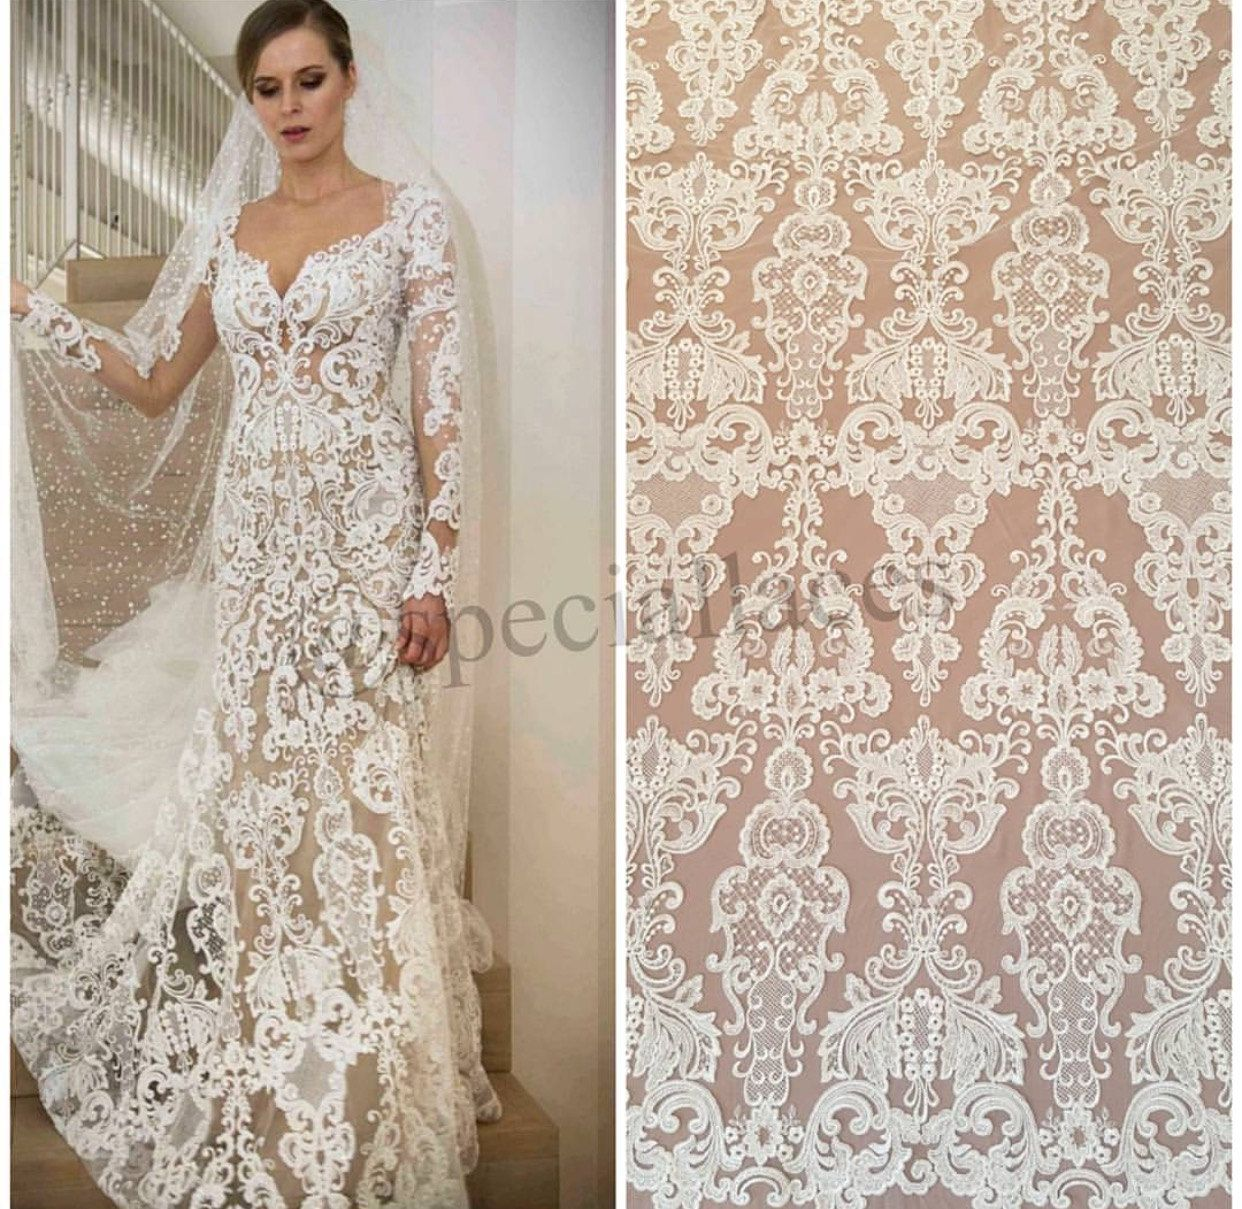 Non Traditional Fall Wedding Dresses: Newest Fashion Ivory Wedding Dress Lace Fabric,3d Lace